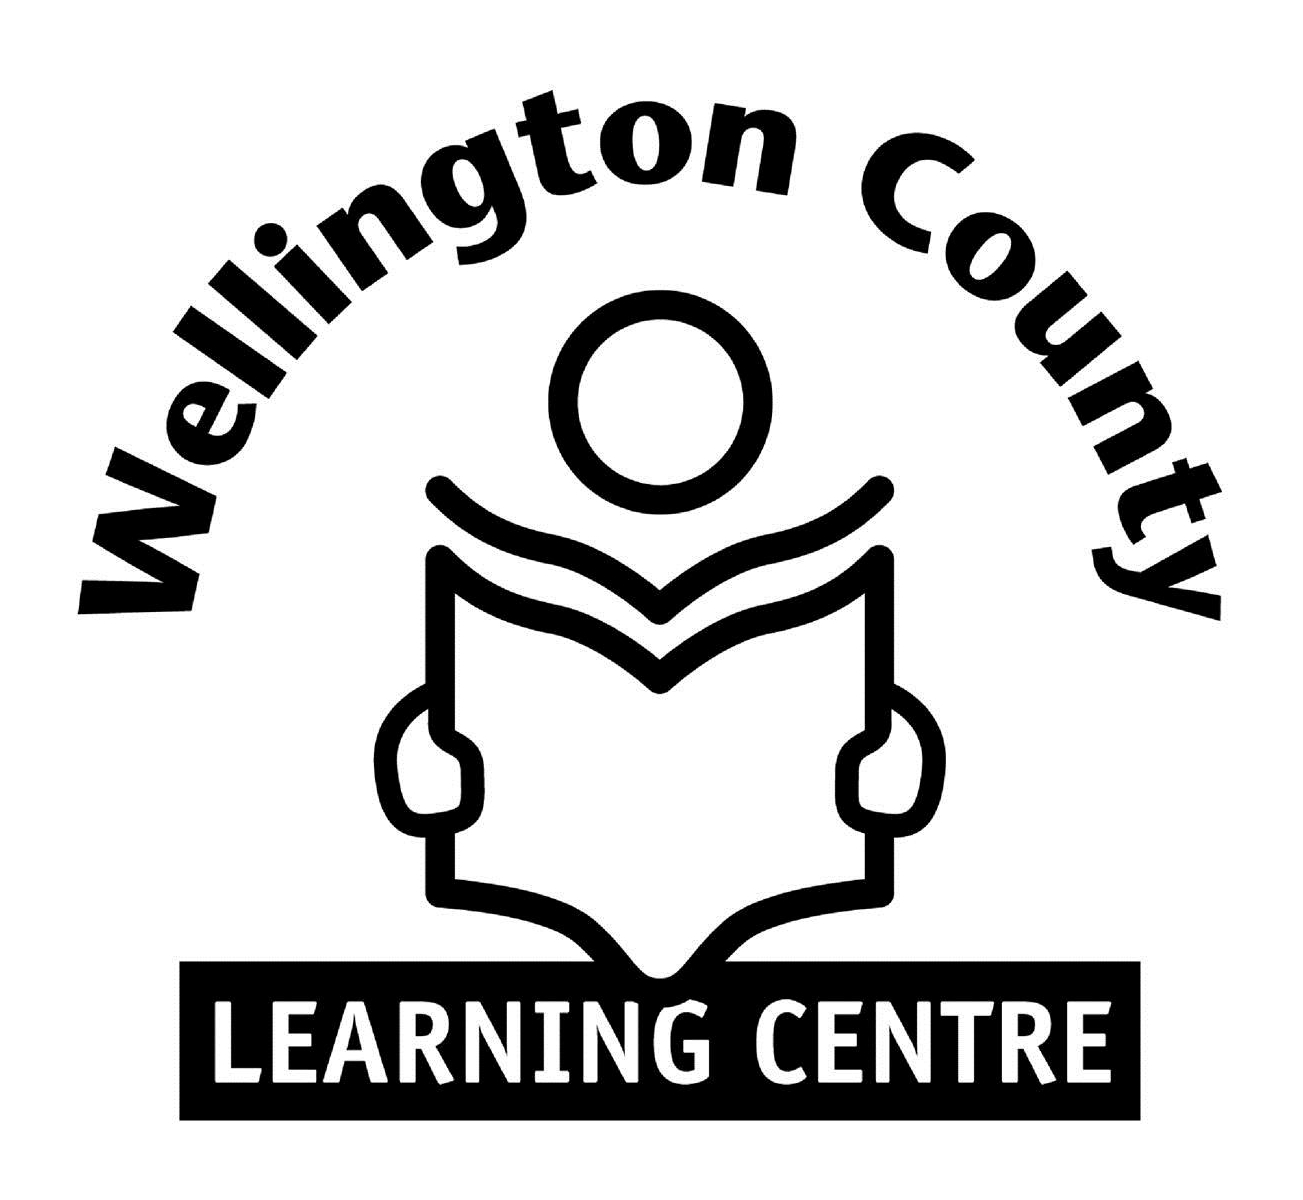 Wellington County Learning Centre